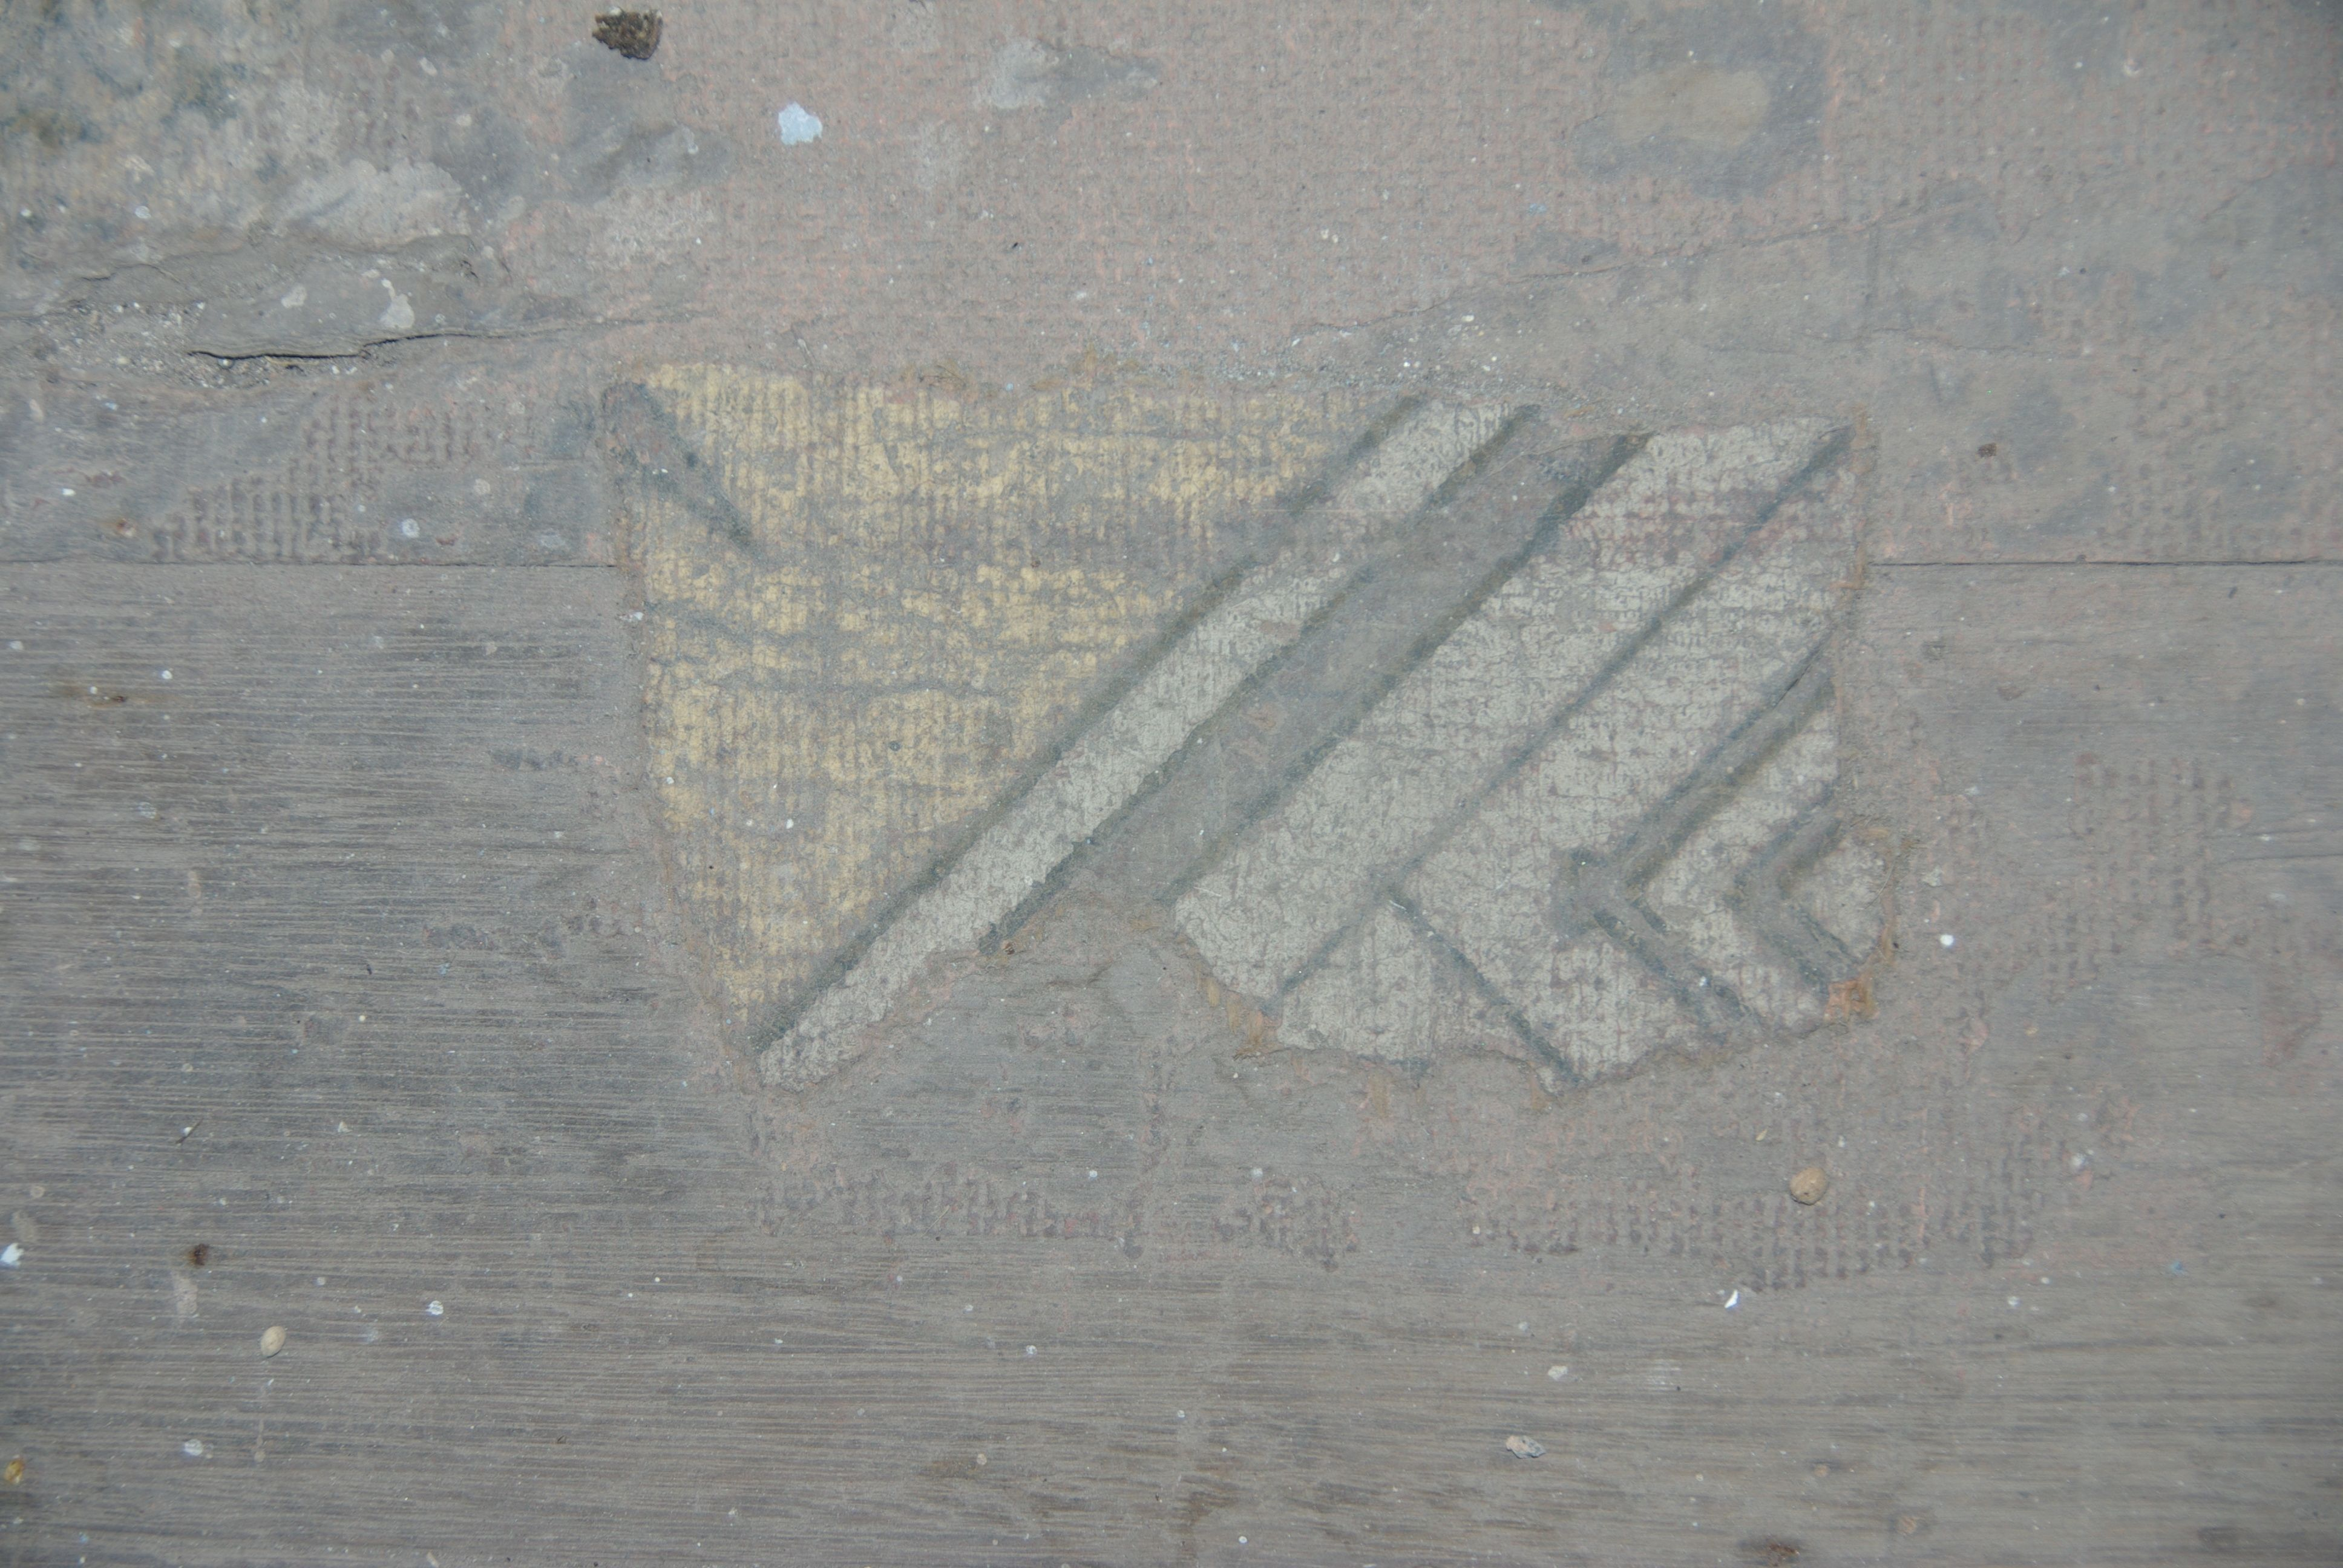 Tiny surviving linoleum fragment with a hessian backing, still adhered to timber floor. Mills Cottage, Port Fairy